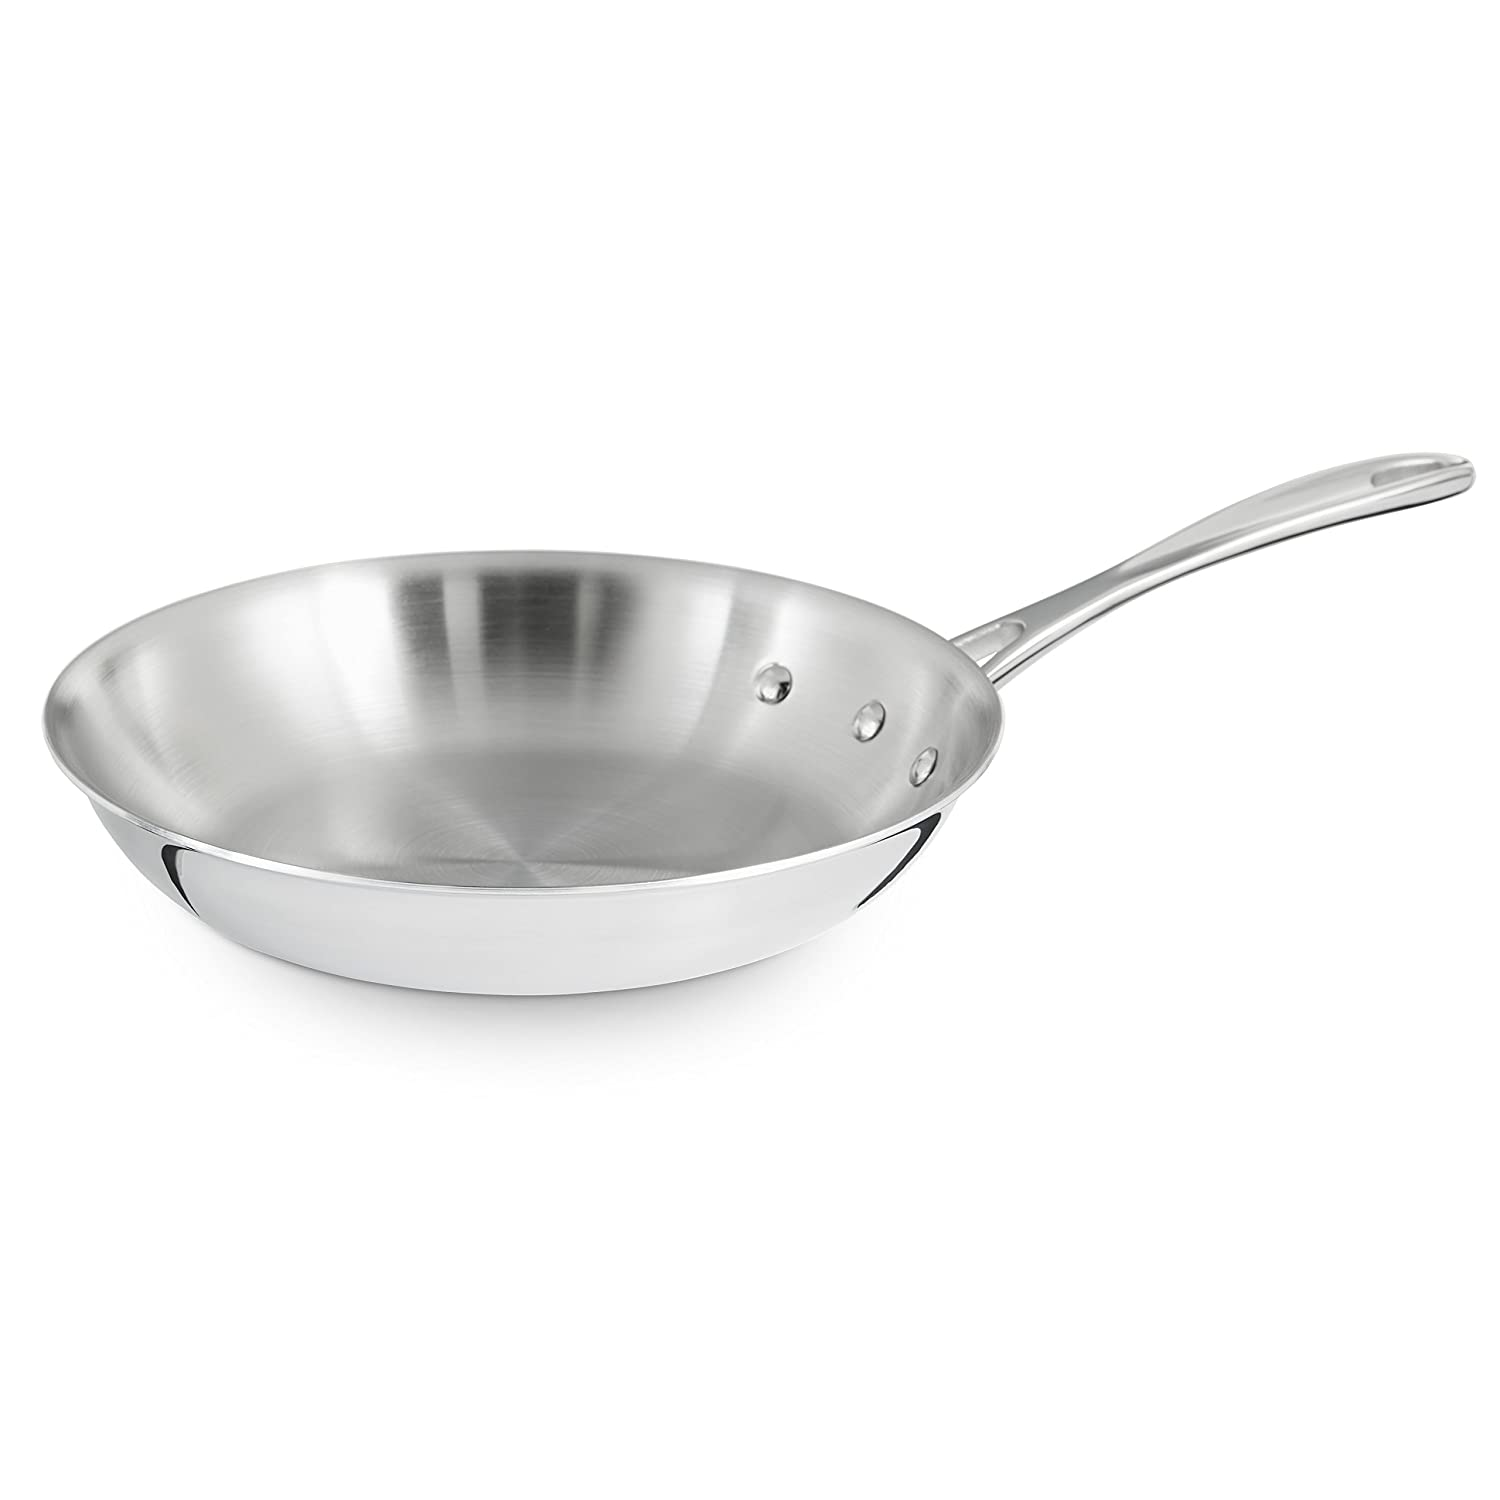 Calphalon Triply Stainless Steel 8-Inch Omelette Fry Pan 1767955